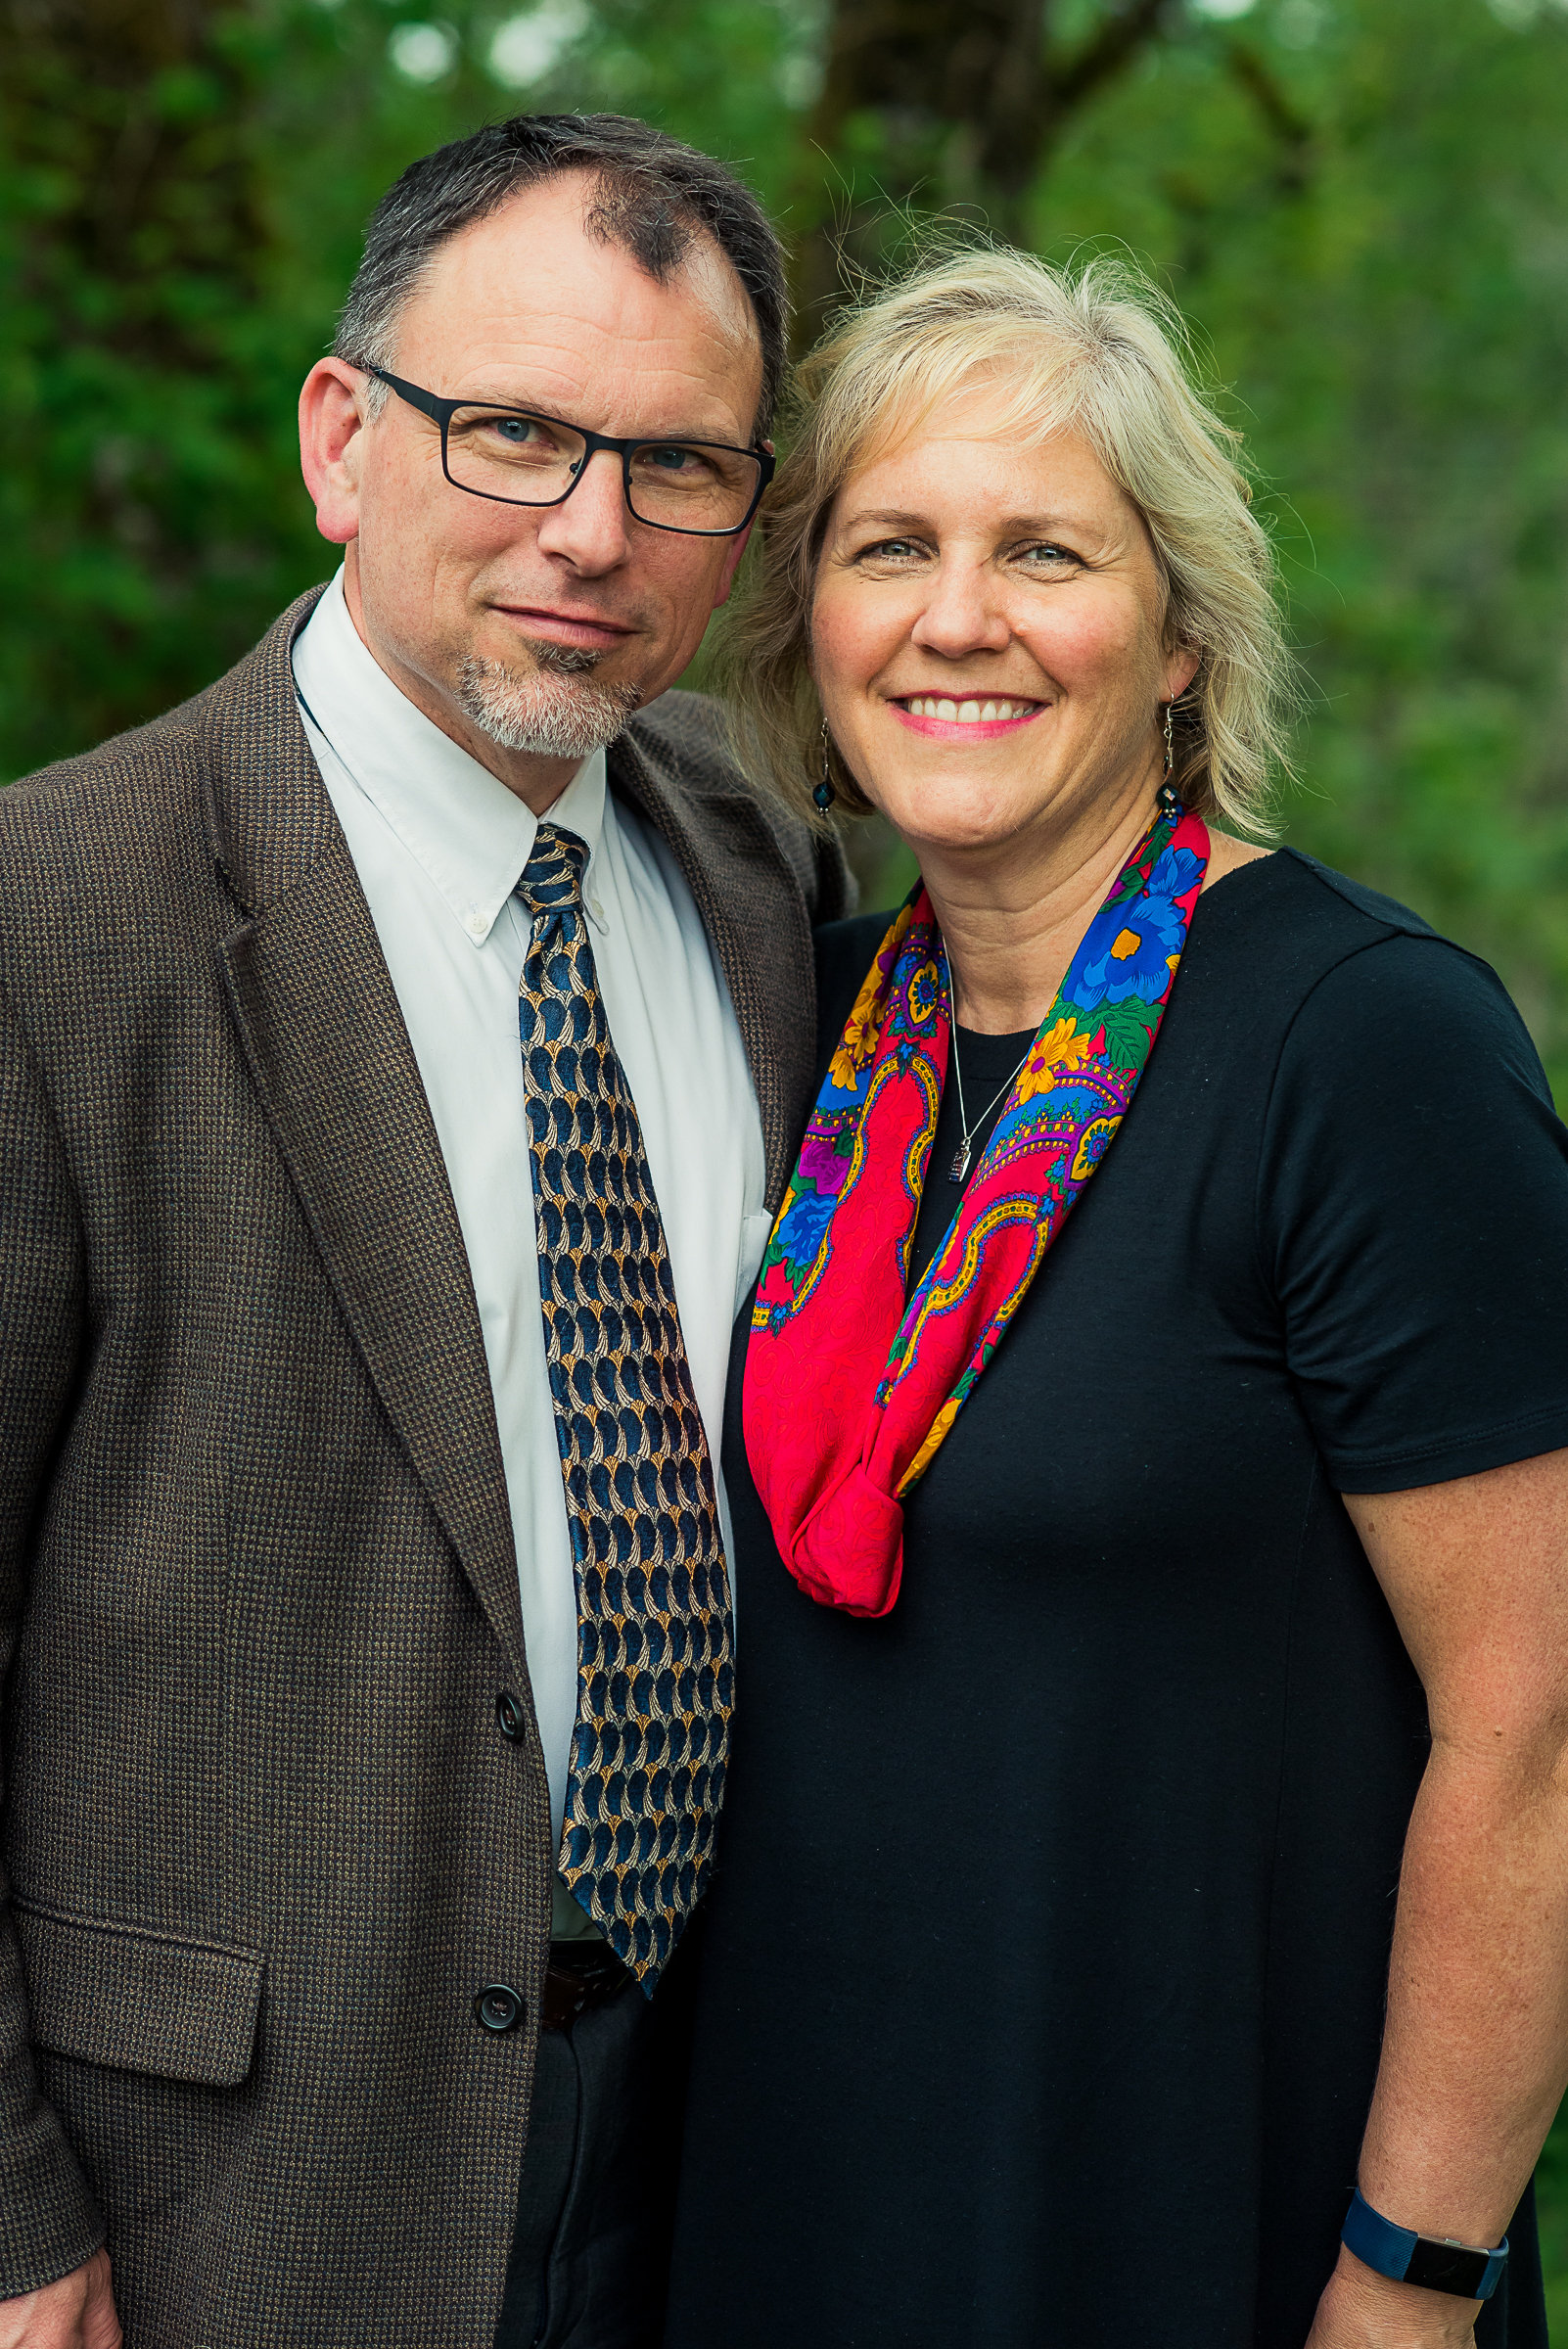 Tom and Caroline Hiscox have served Jesus through InFaith fellowship churches in Northwest Oregon since 1994. Tom assumed the duties of area missionary in January 2018.